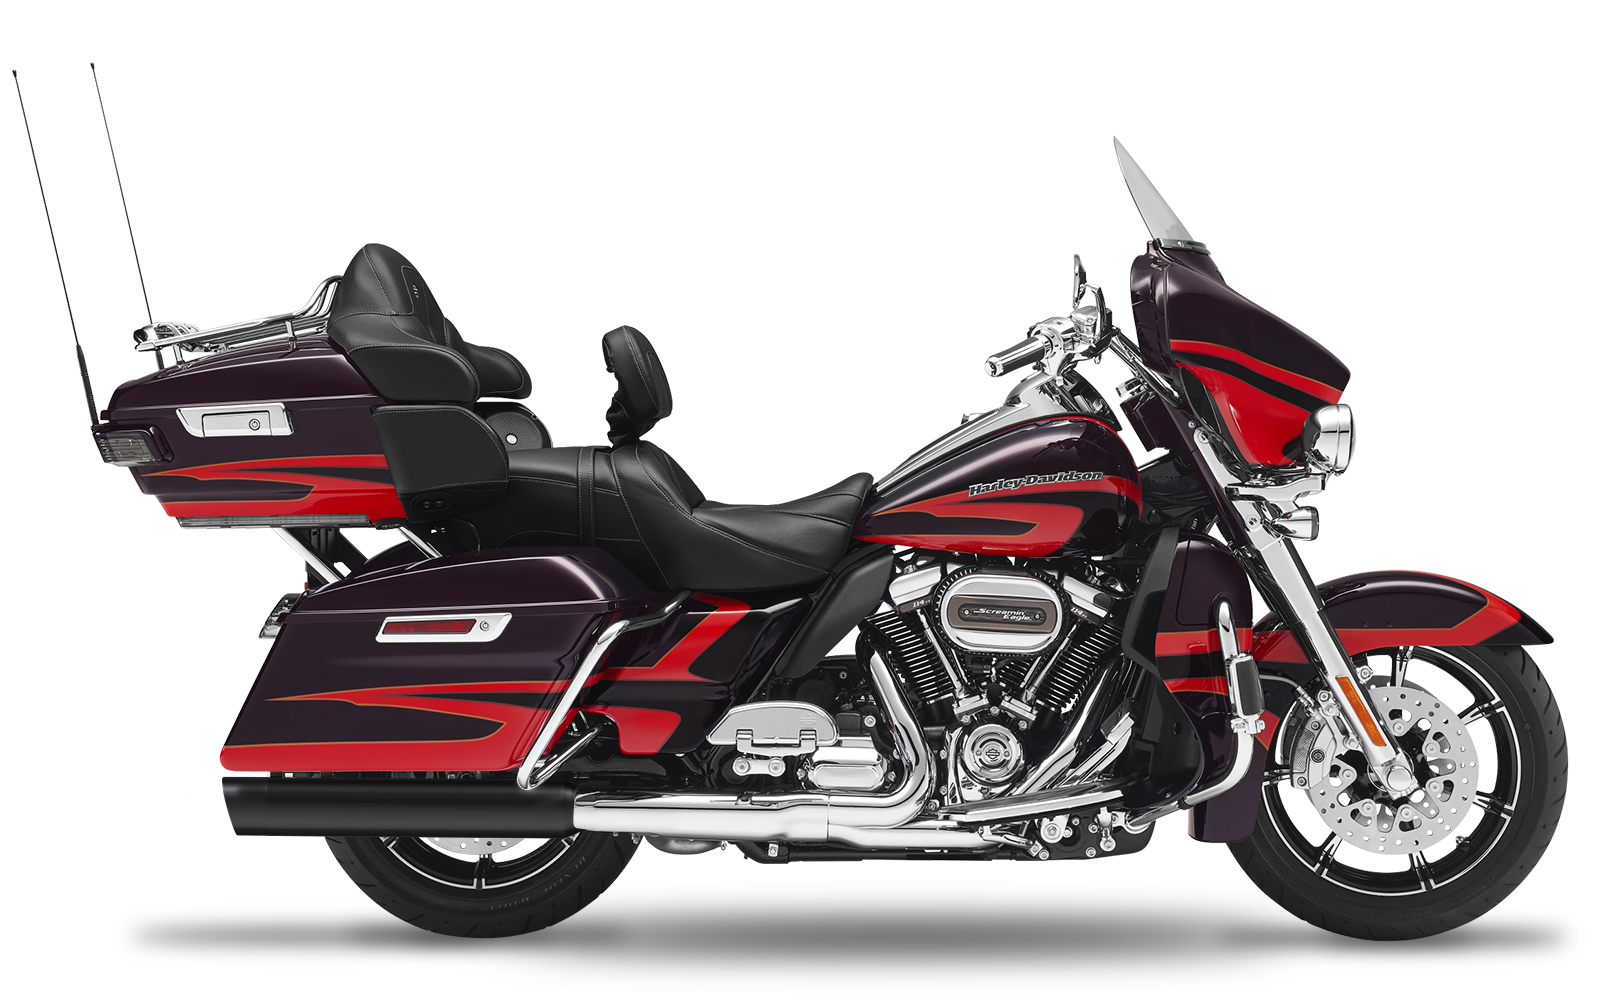 Touring - Electra Glide Ultra Limited Low - ME114 - 2019 - Slipons